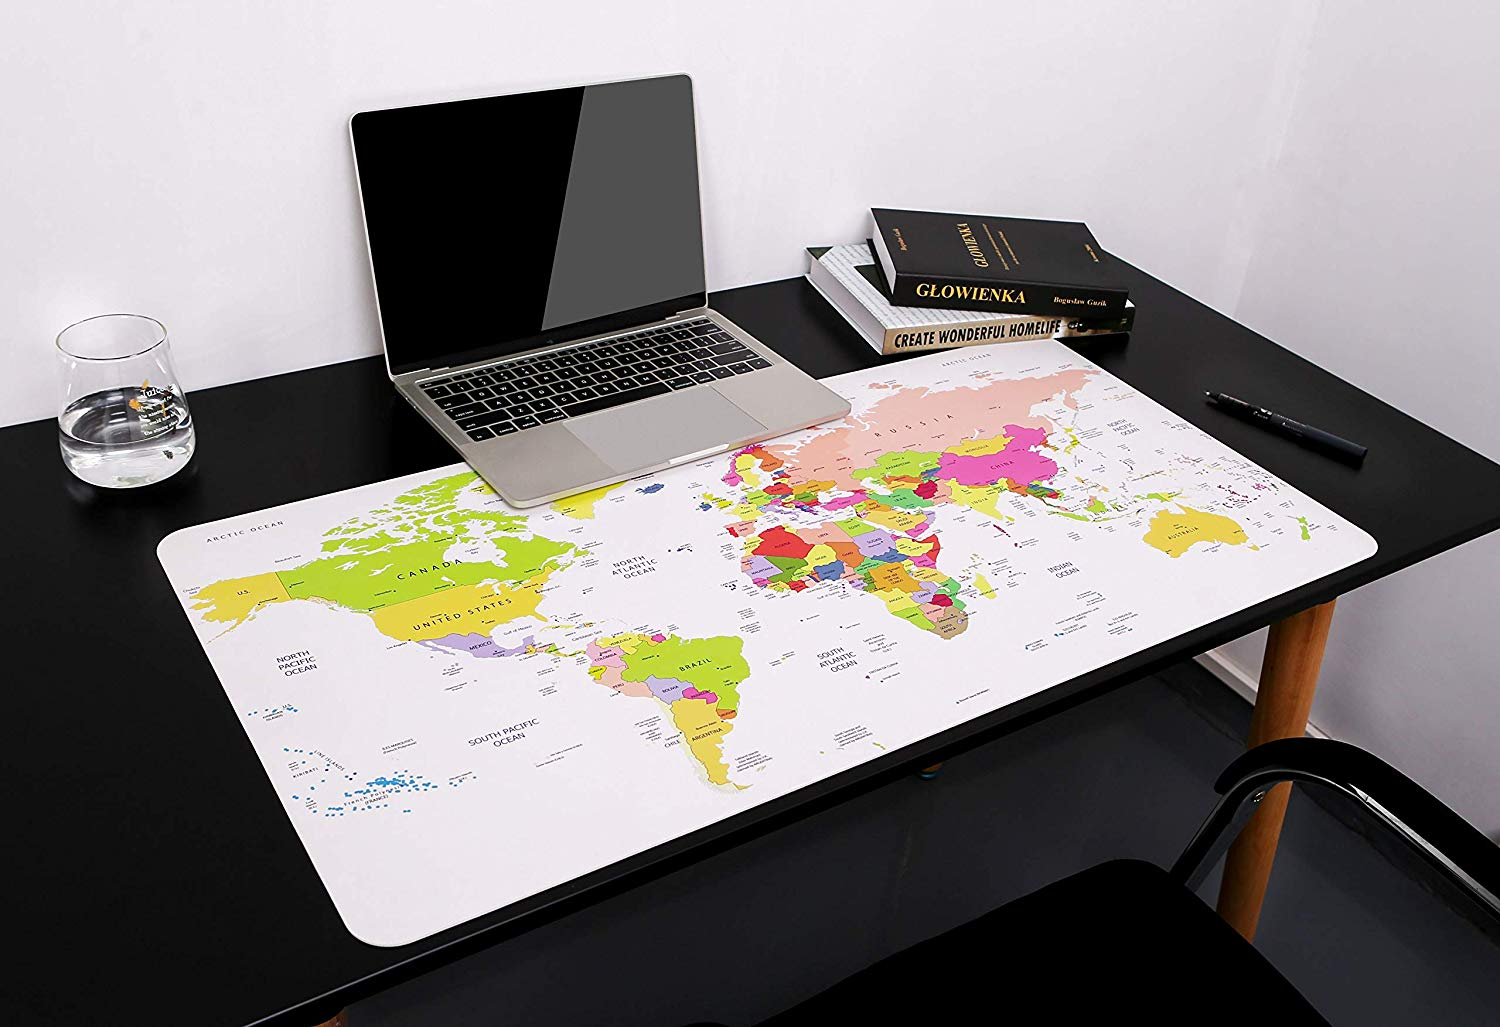 YSAGi Ultra Thin Waterproof PU Leather Mouse Pad, Ideal For Desk Cover, Computer Keyboard, PC And Laptop World Map